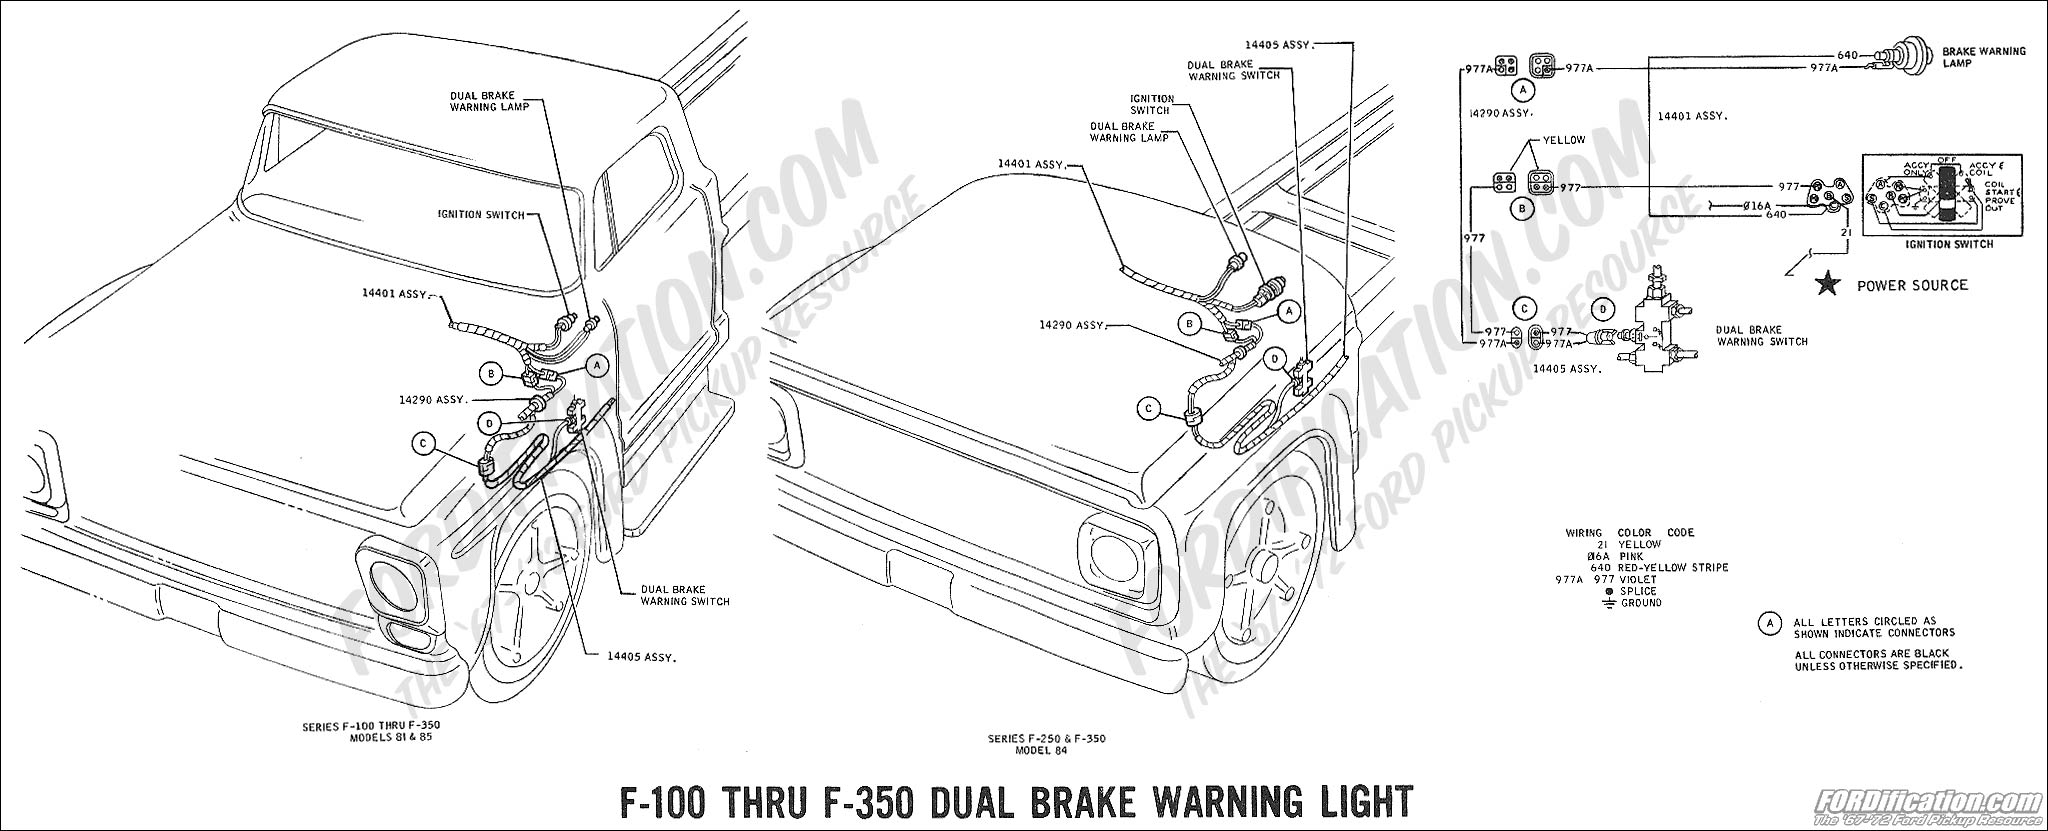 wiring_69brakewarninglight ford truck technical drawings and schematics section h wiring 1986 Ford F-250 Fuel System Wiring Diagram at fashall.co